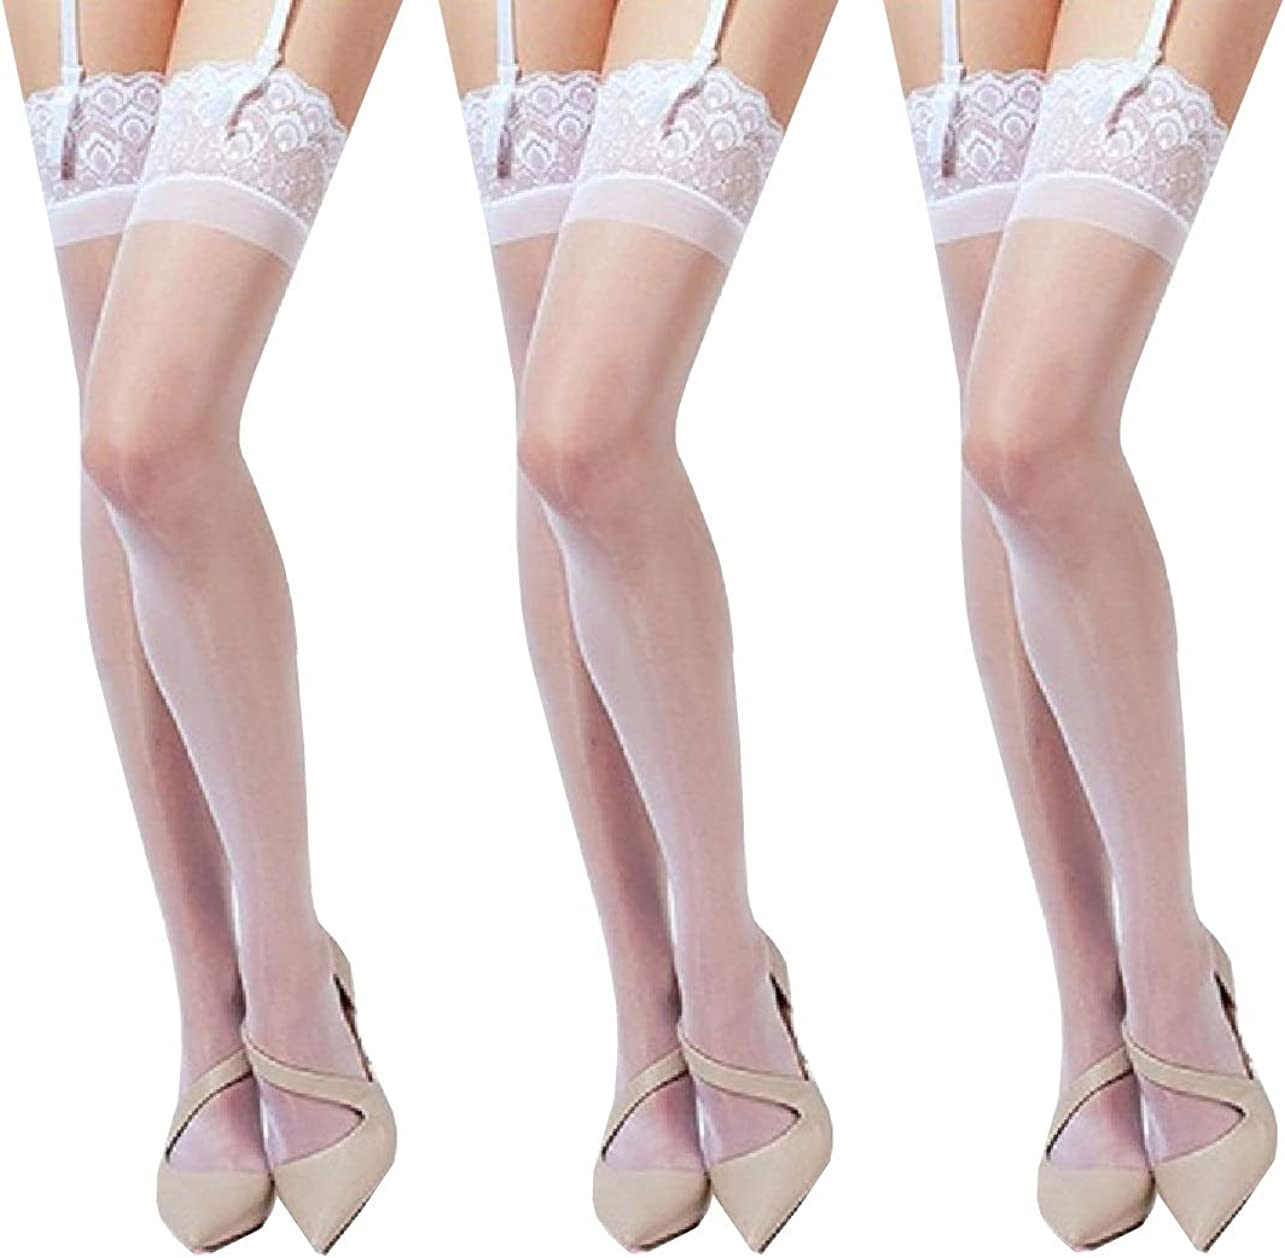 3 Pairs Ultra Shiny Lace Top Thigh High Silk Stockings Shimmery Glossy Sheer Antiskid Silicone Tights